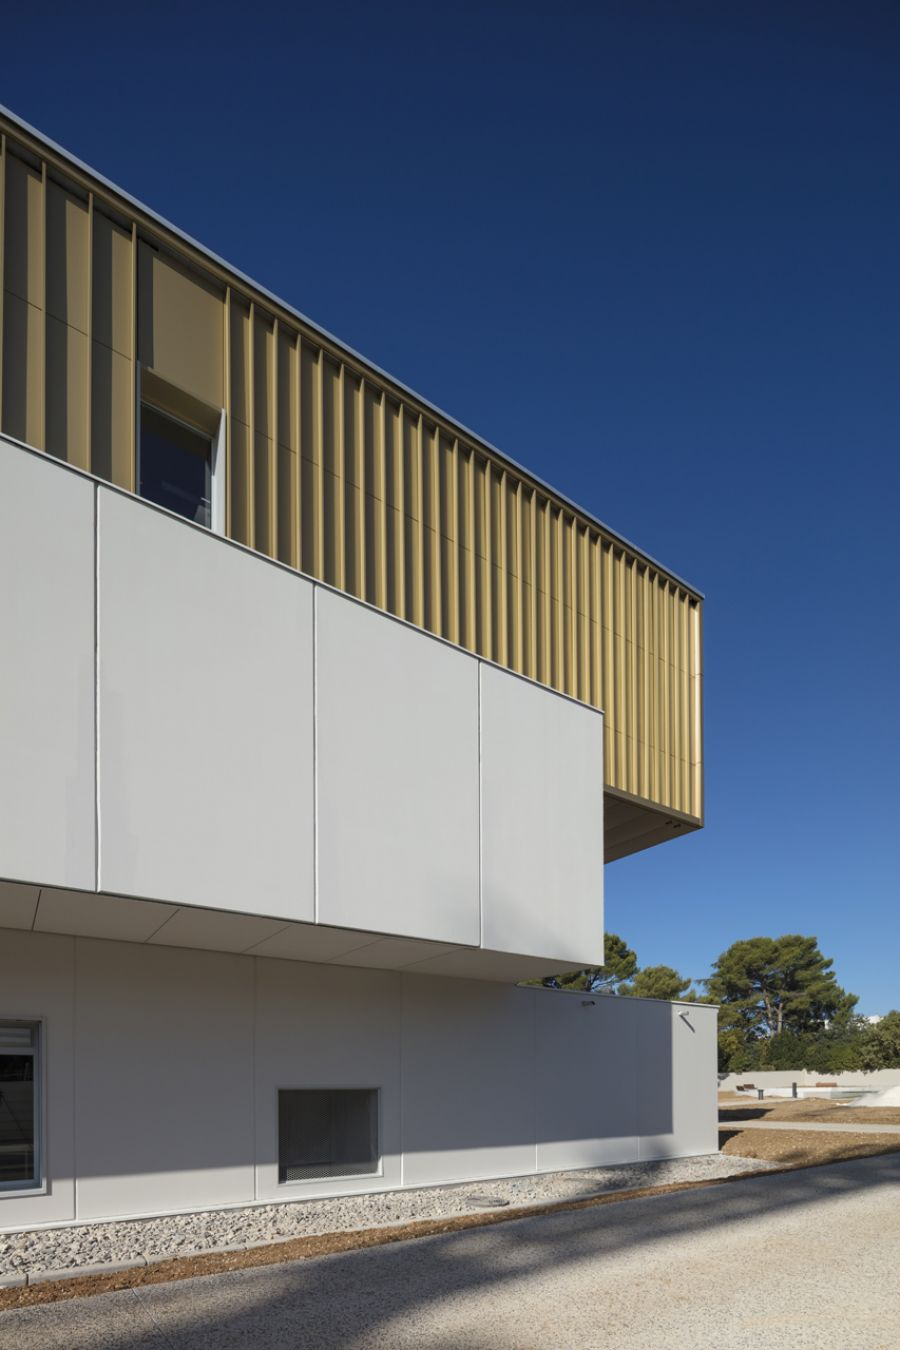 Groupe Scolaire Germaine Richier - Arch.MDR Architectes - Photo : Julien Thomazo